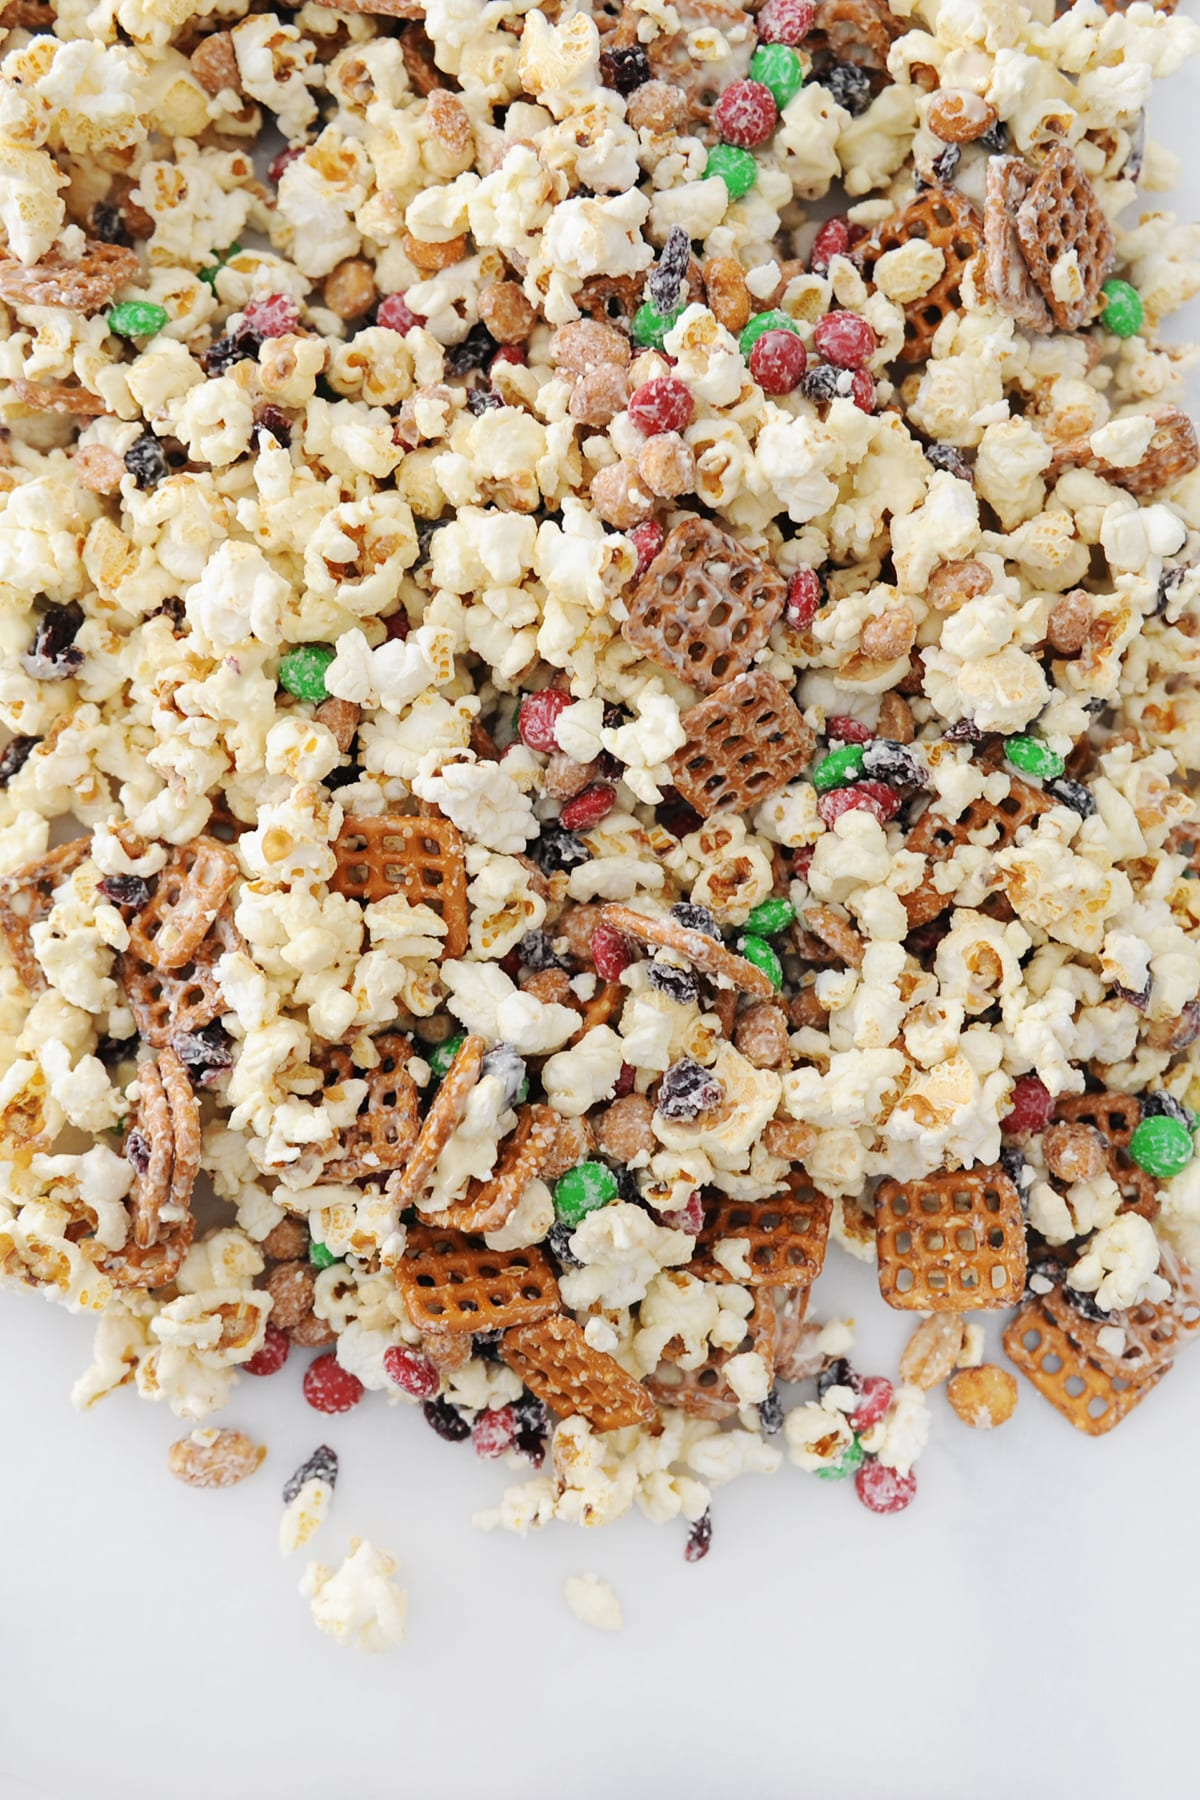 Popcorn snack mix ideas